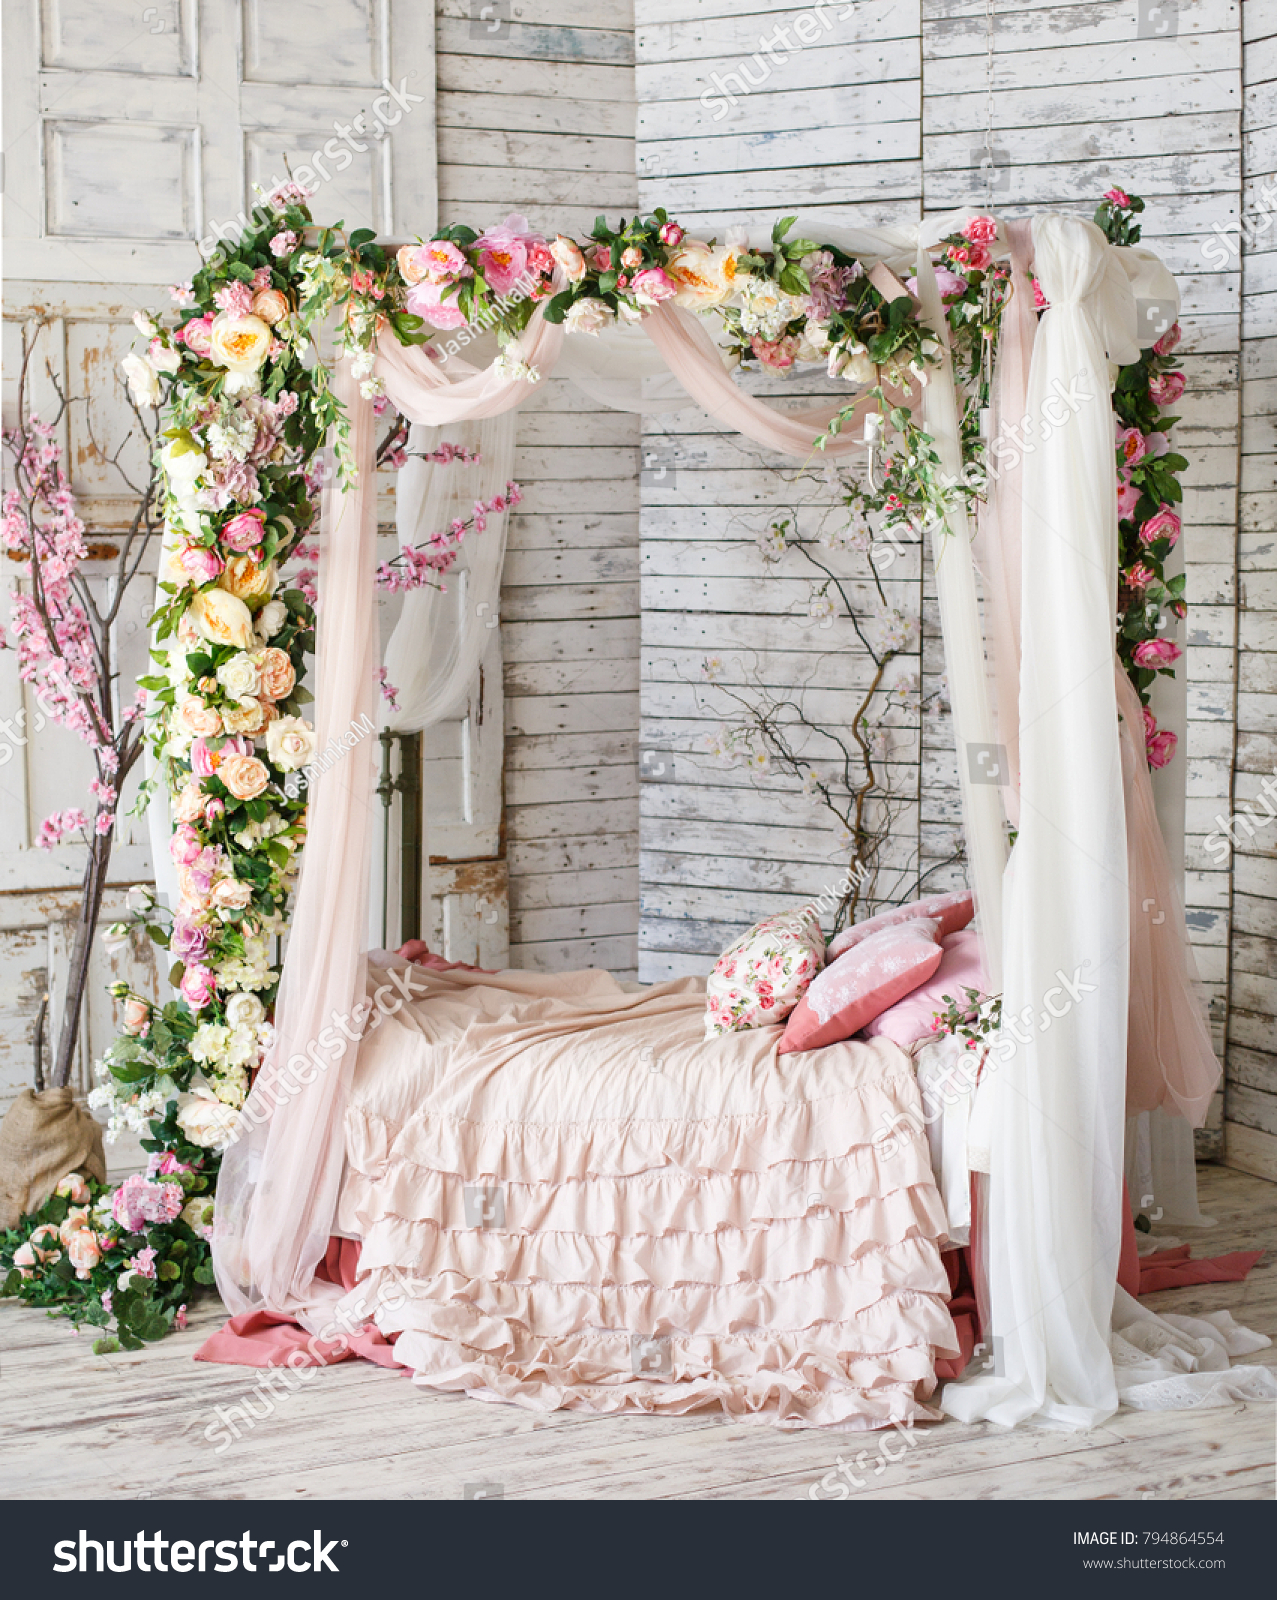 Decorated Bedroom In Natural Style With A Lot Of Flowers. Bed, Braided And  Twined